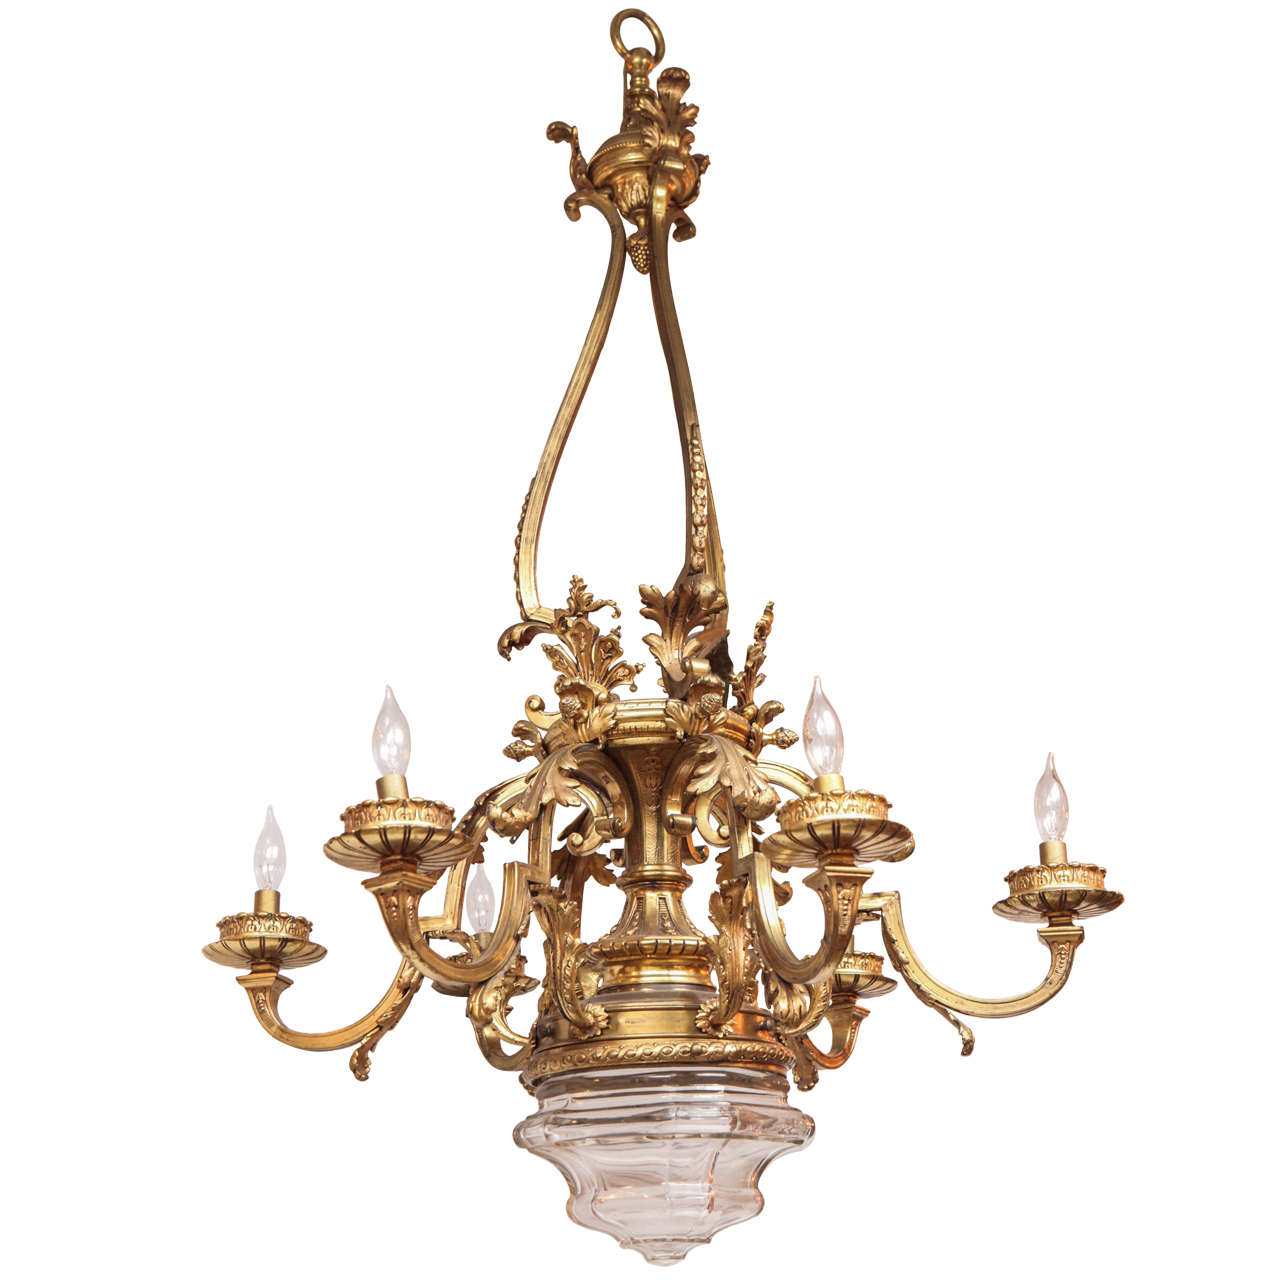 1900s French Doré Bronze Chandelier with Crystal Bowl